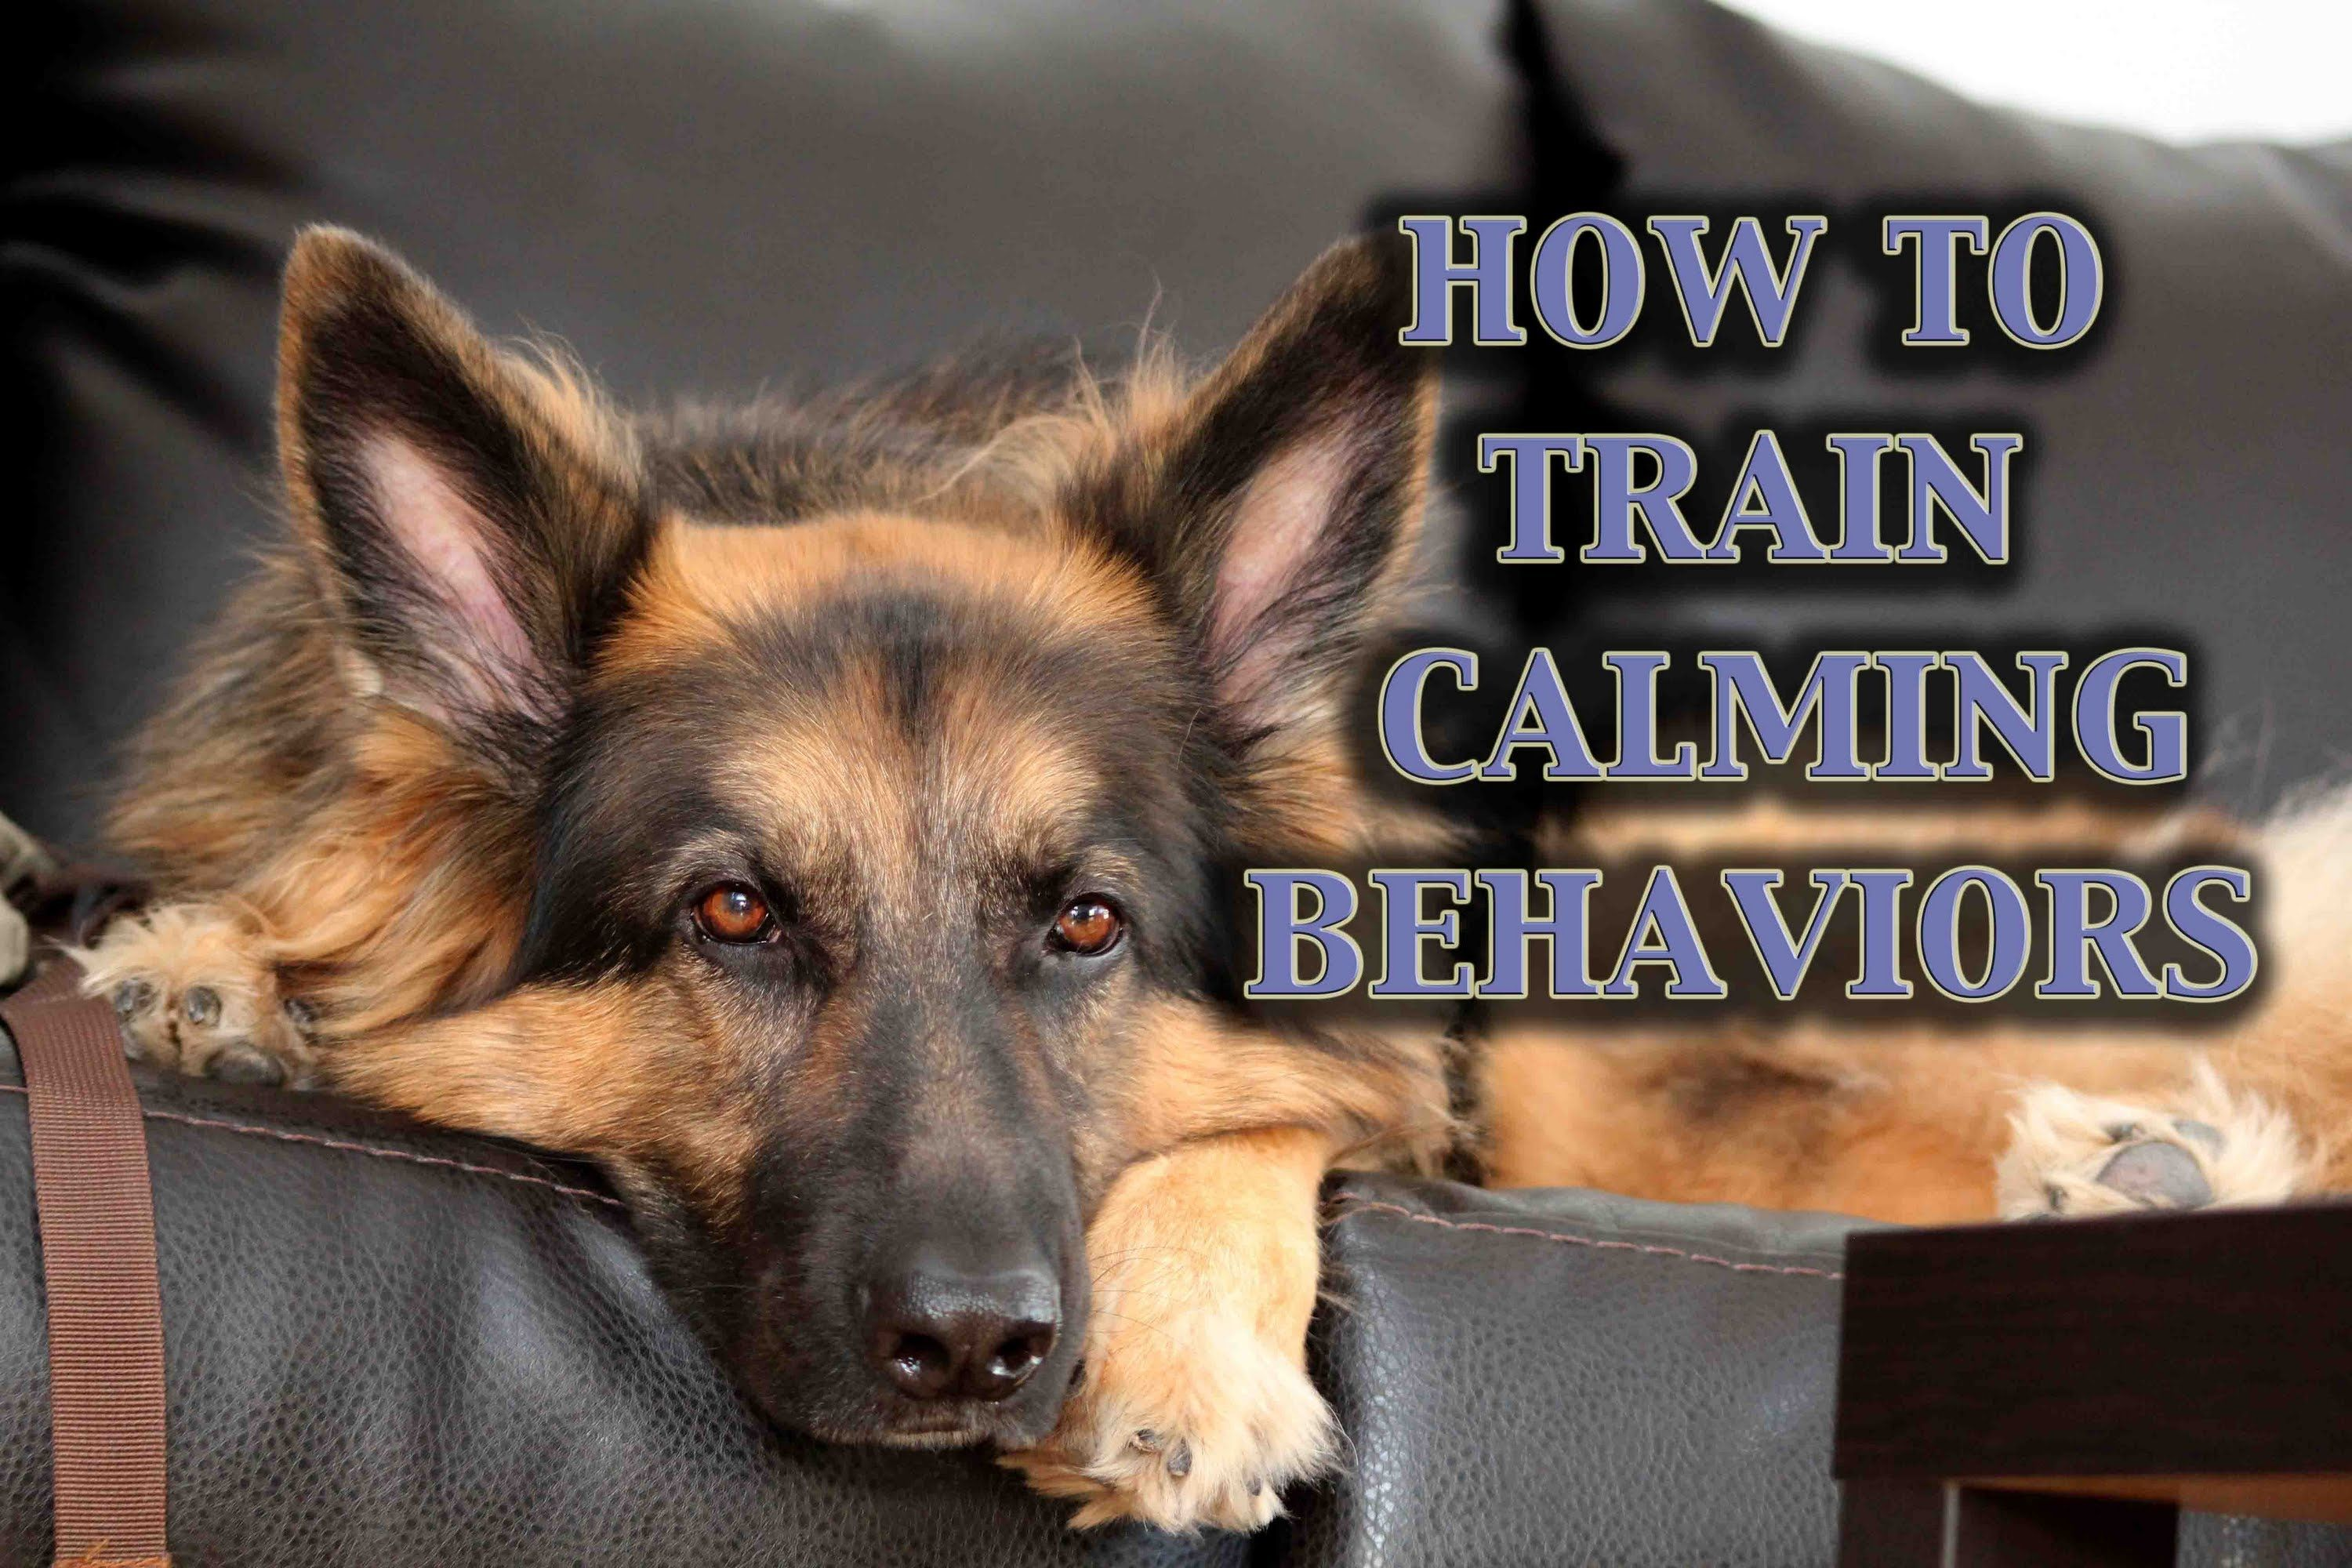 Best Dog Training Video Ever 11 Week Old Trained German